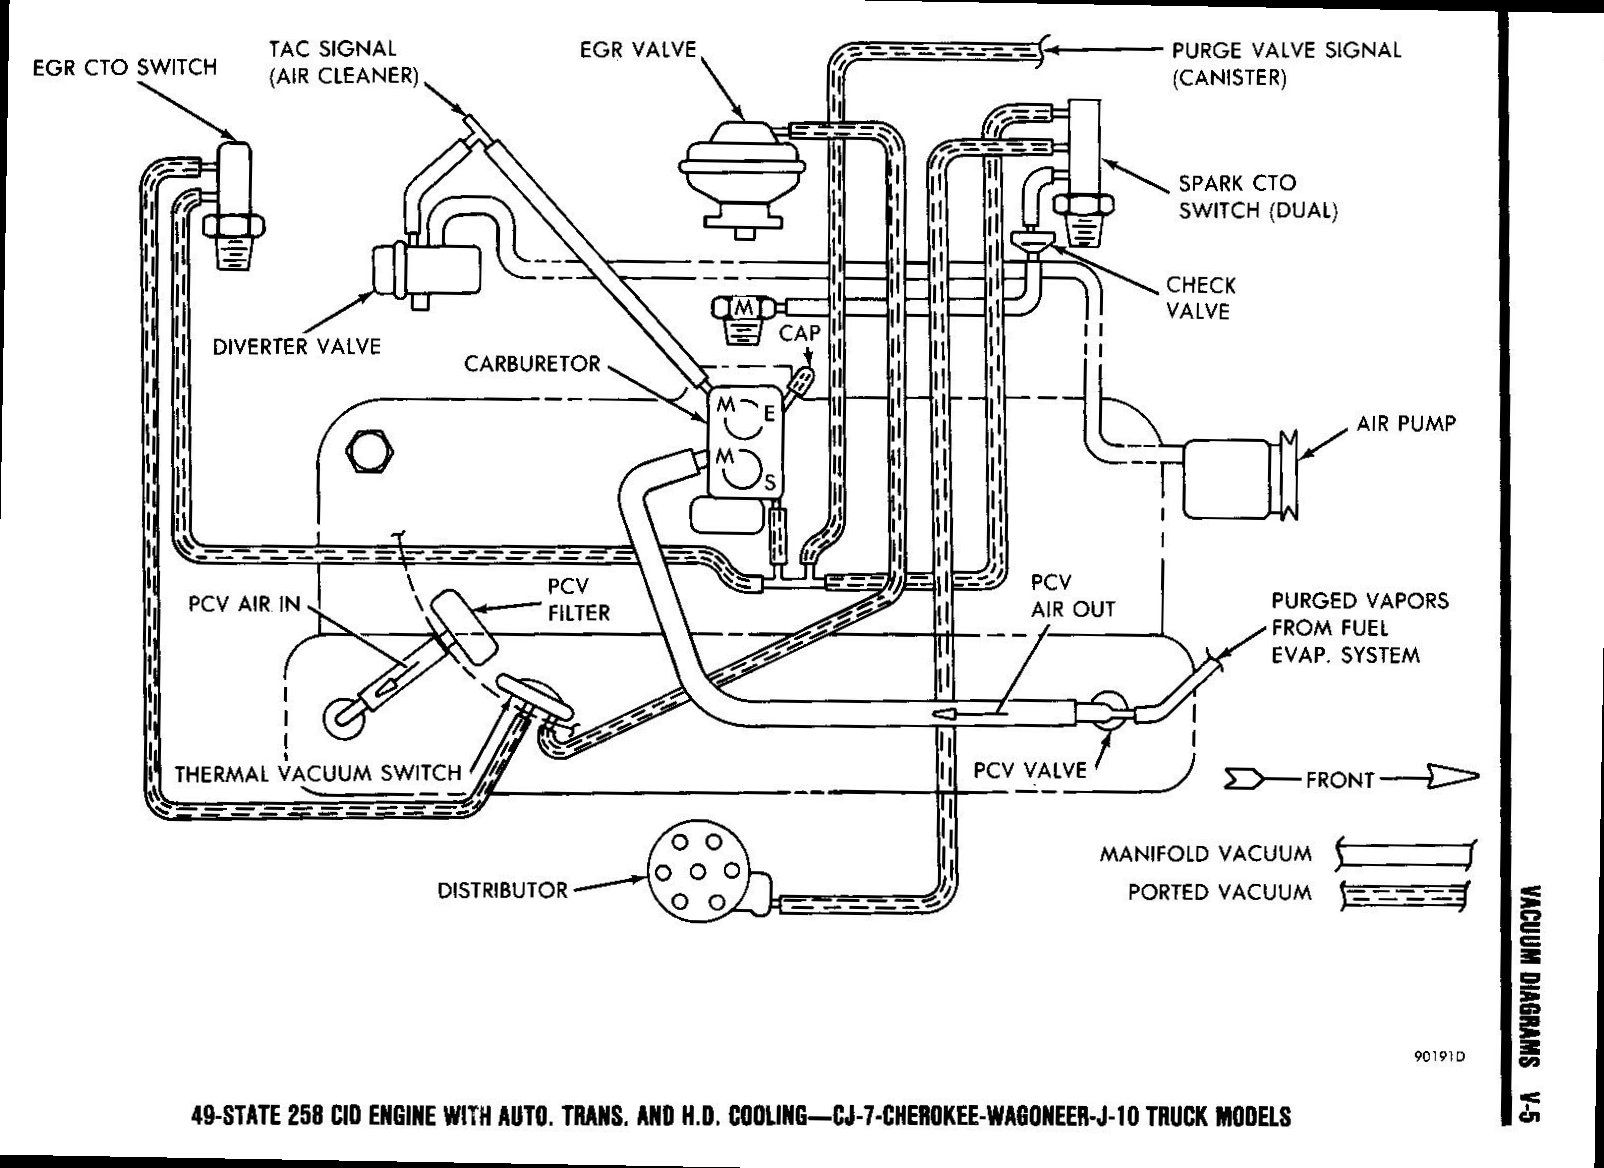 cj5 258 vacuum diagram jeepforum com jeep diagram jeep vacuums 1976 jeep cj5 vacuum line diagram [ 1604 x 1168 Pixel ]